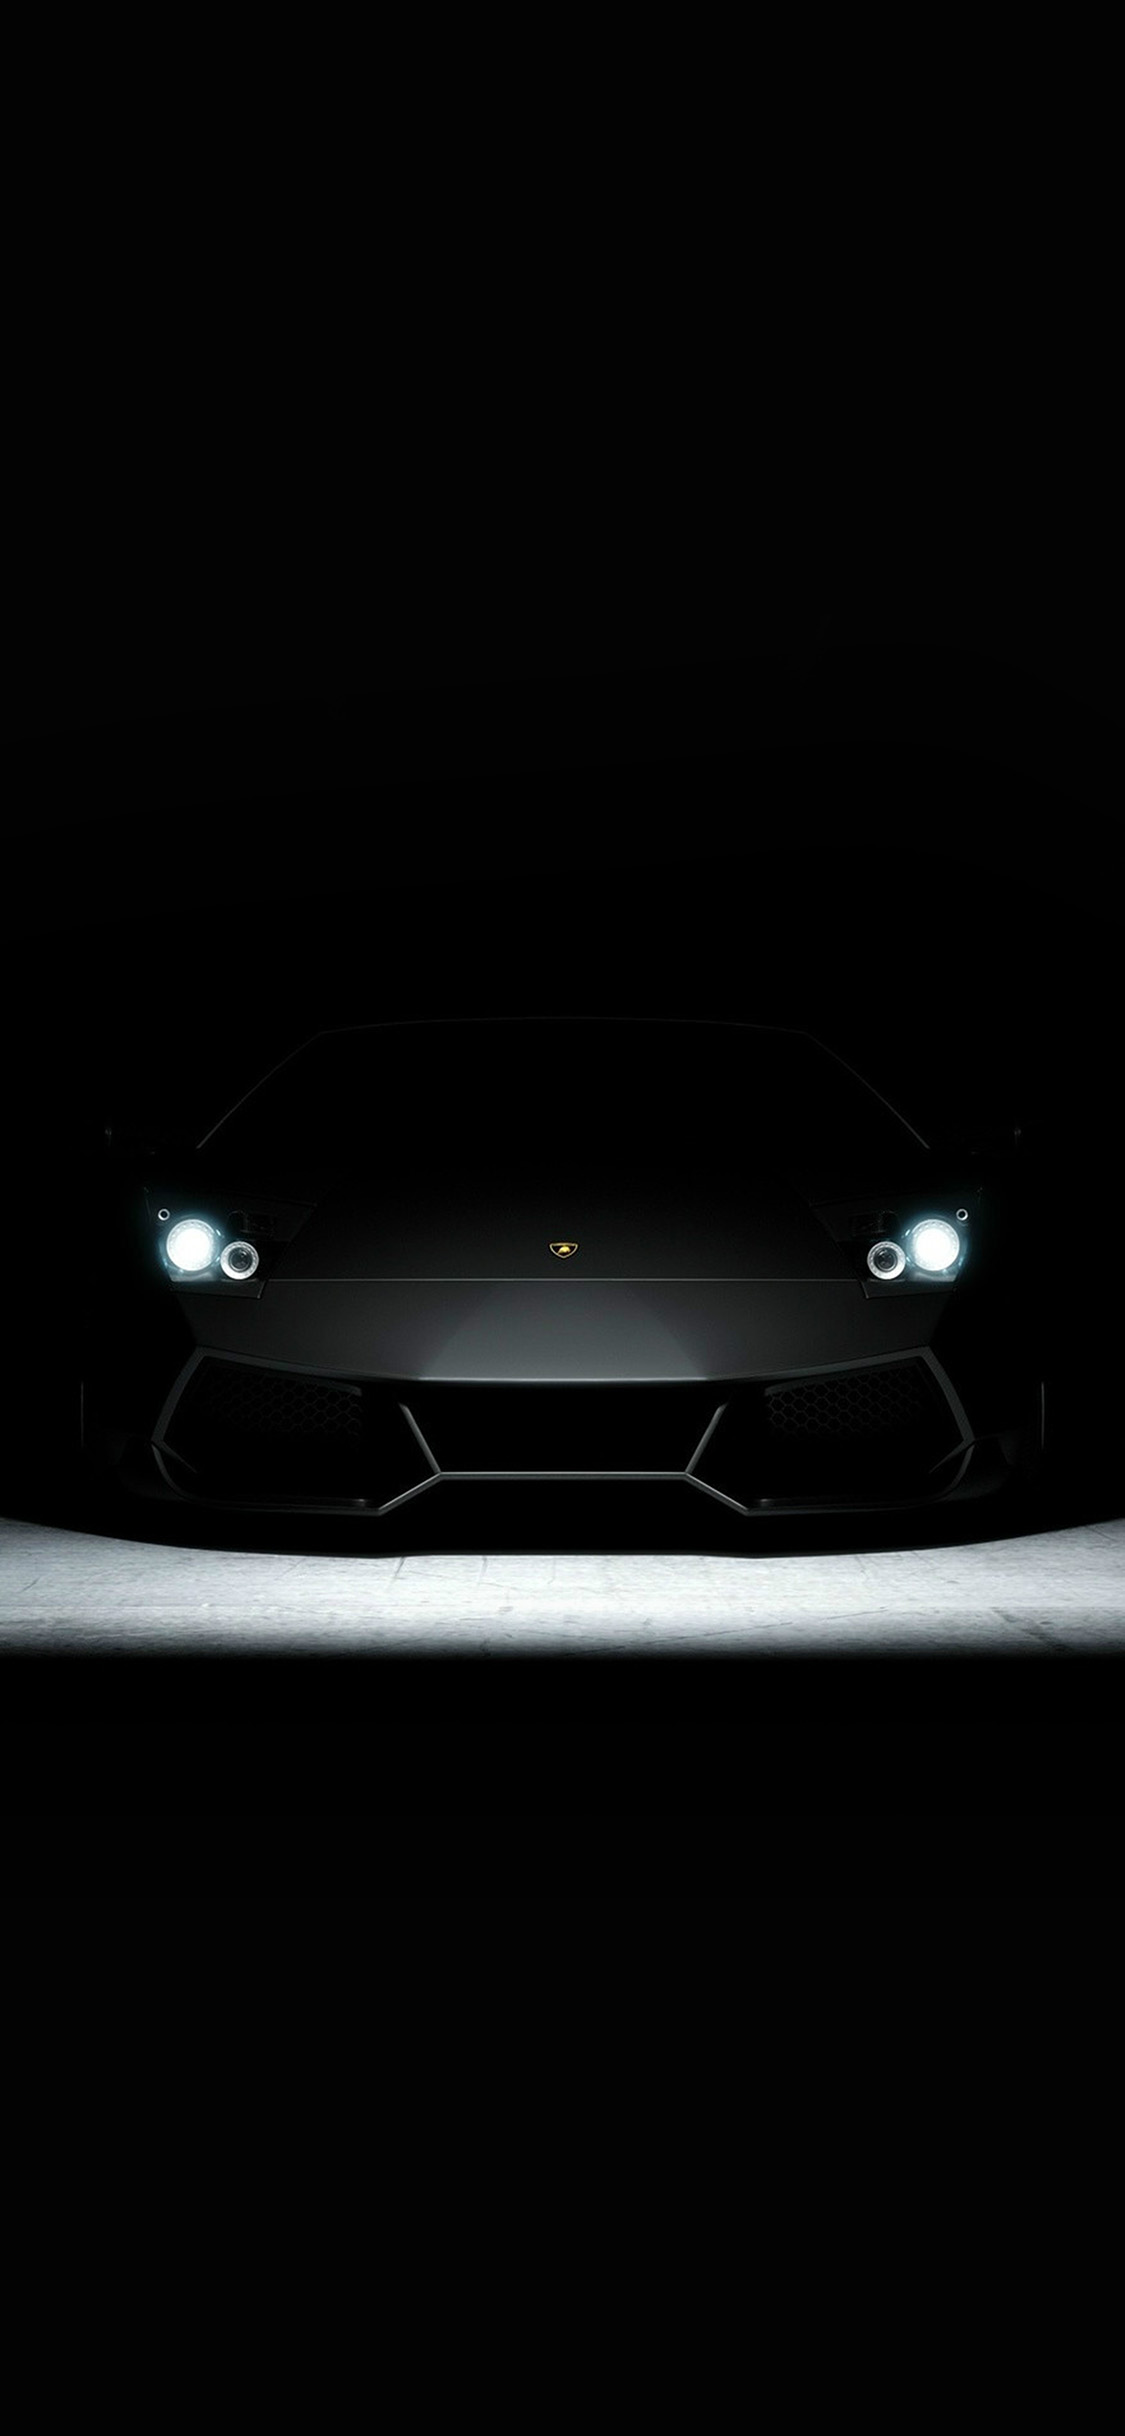 Iphonexpapers Com Iphone X Wallpaper Bd23 Car Dark Lamborghini